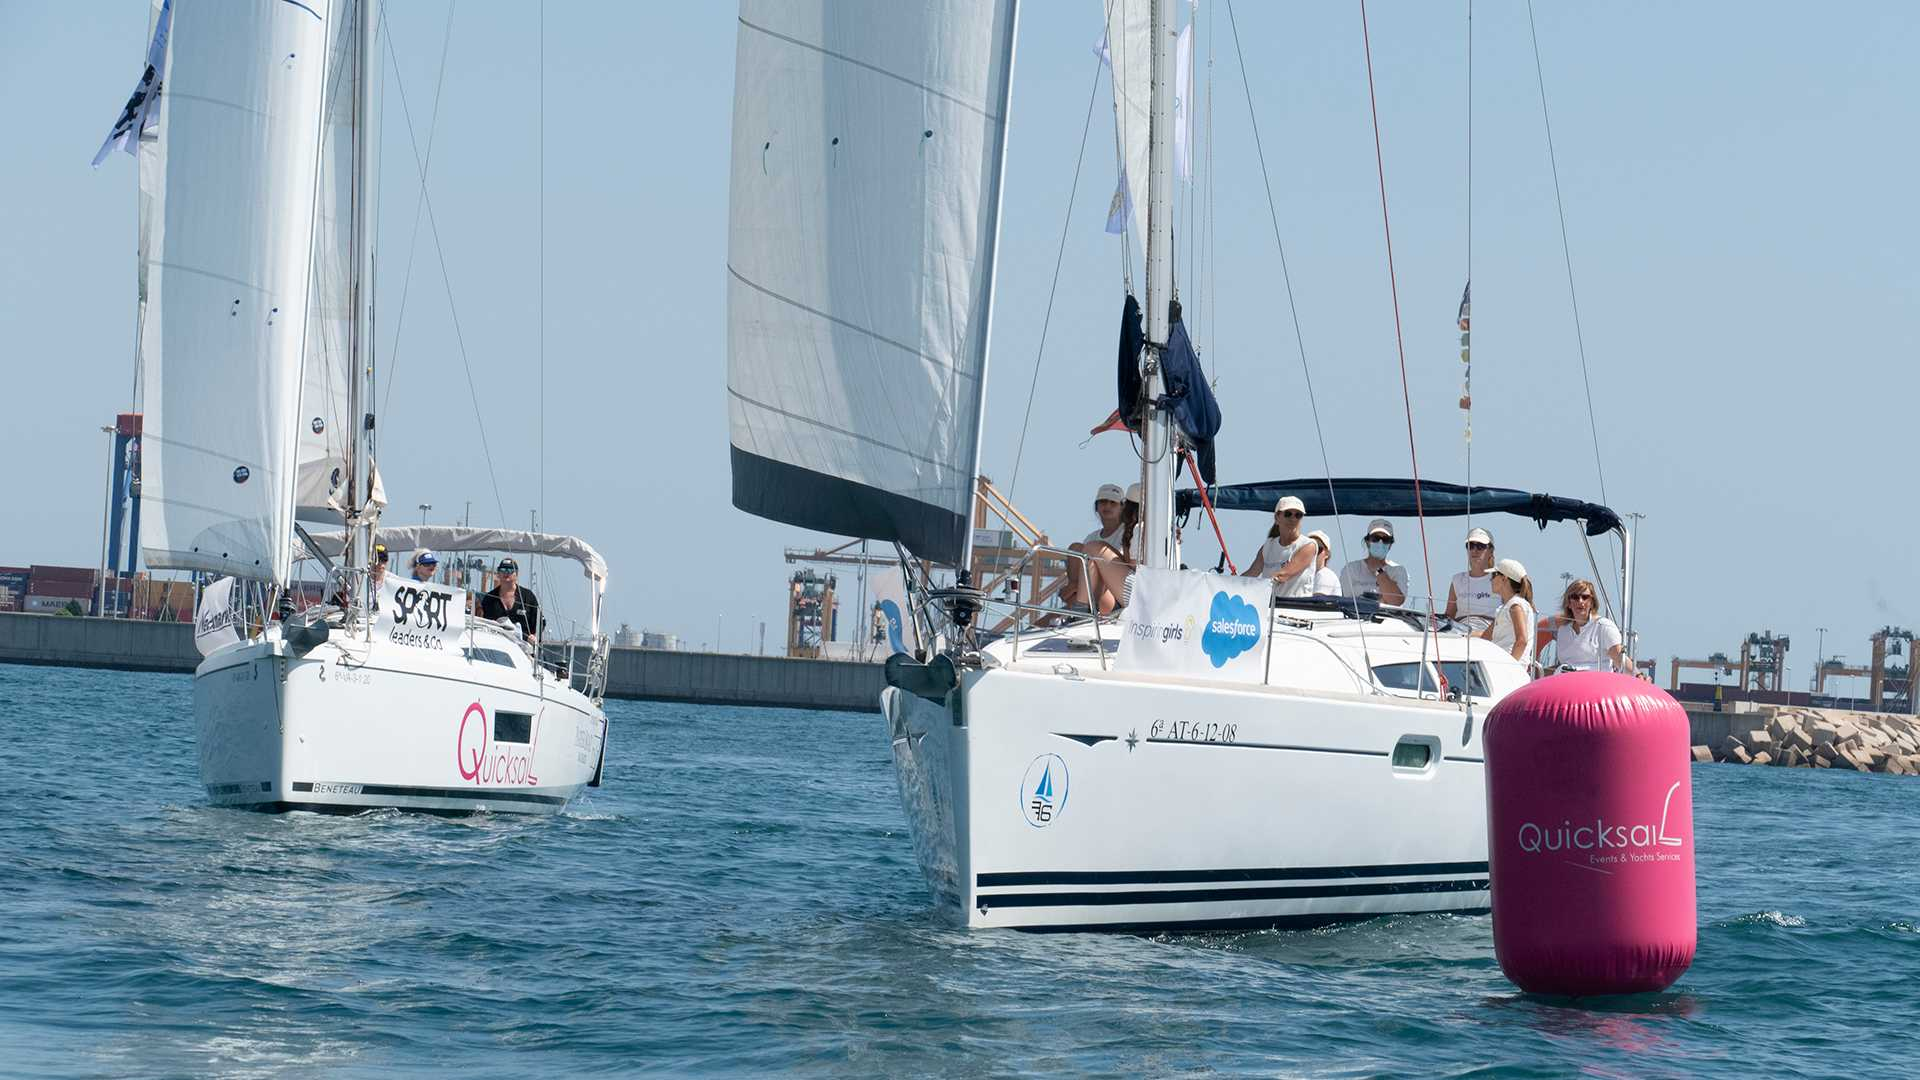 QUICKSAIL EVENTS & YACHT SERVICES